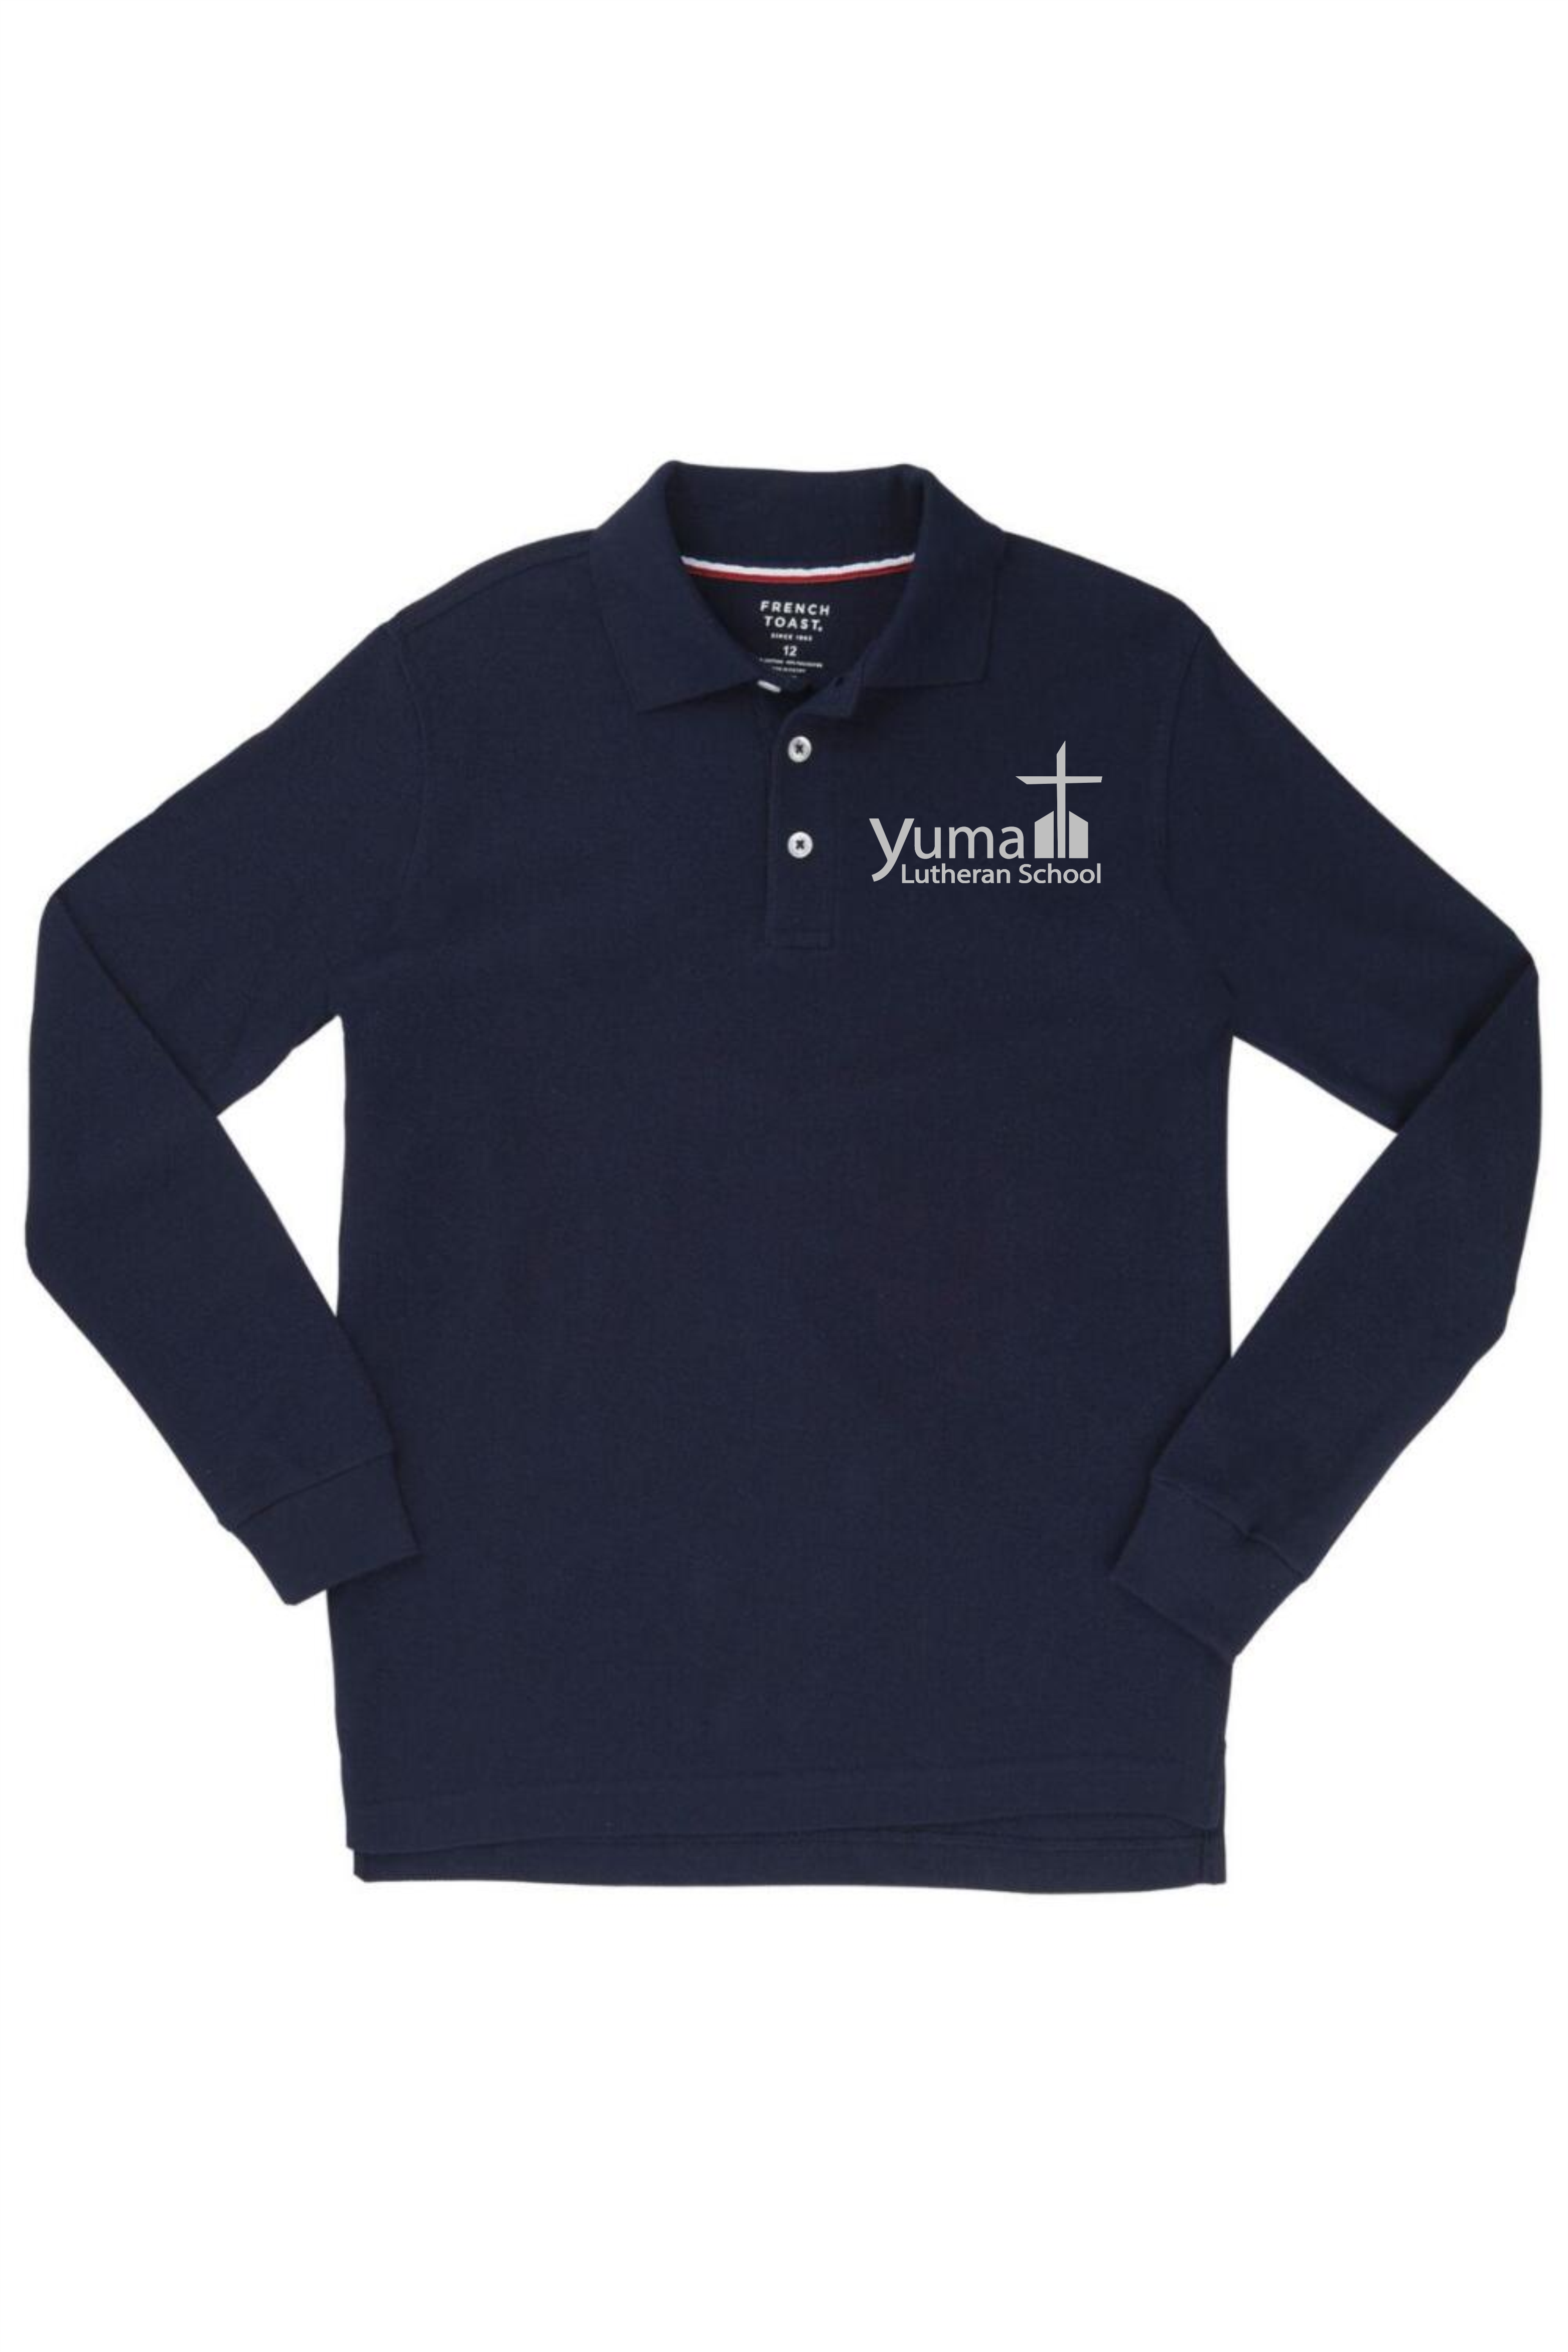 French Toast Boy's Long Sleeve Pique Polo (Polo Size: XS - 4/5, French Toast Polo Color: Navy - YLS)